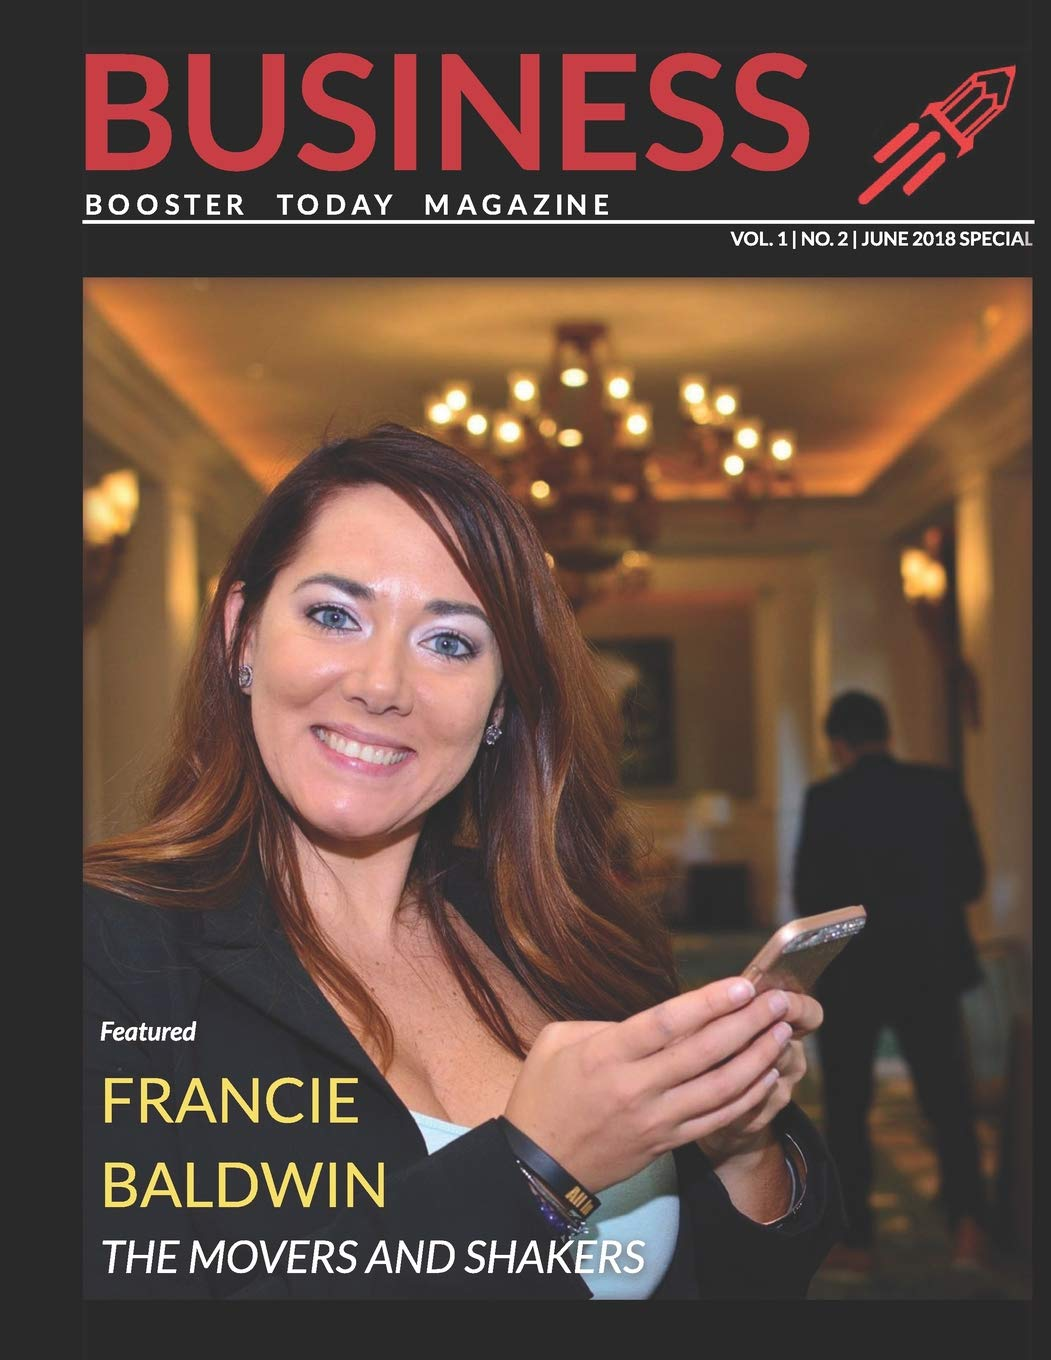 Read Online Business Booster Today Magazine: THE MOVERS AND SHAKERS OF THE BUSINESS WORLD (JUNE 2018 SPECIAL) ebook